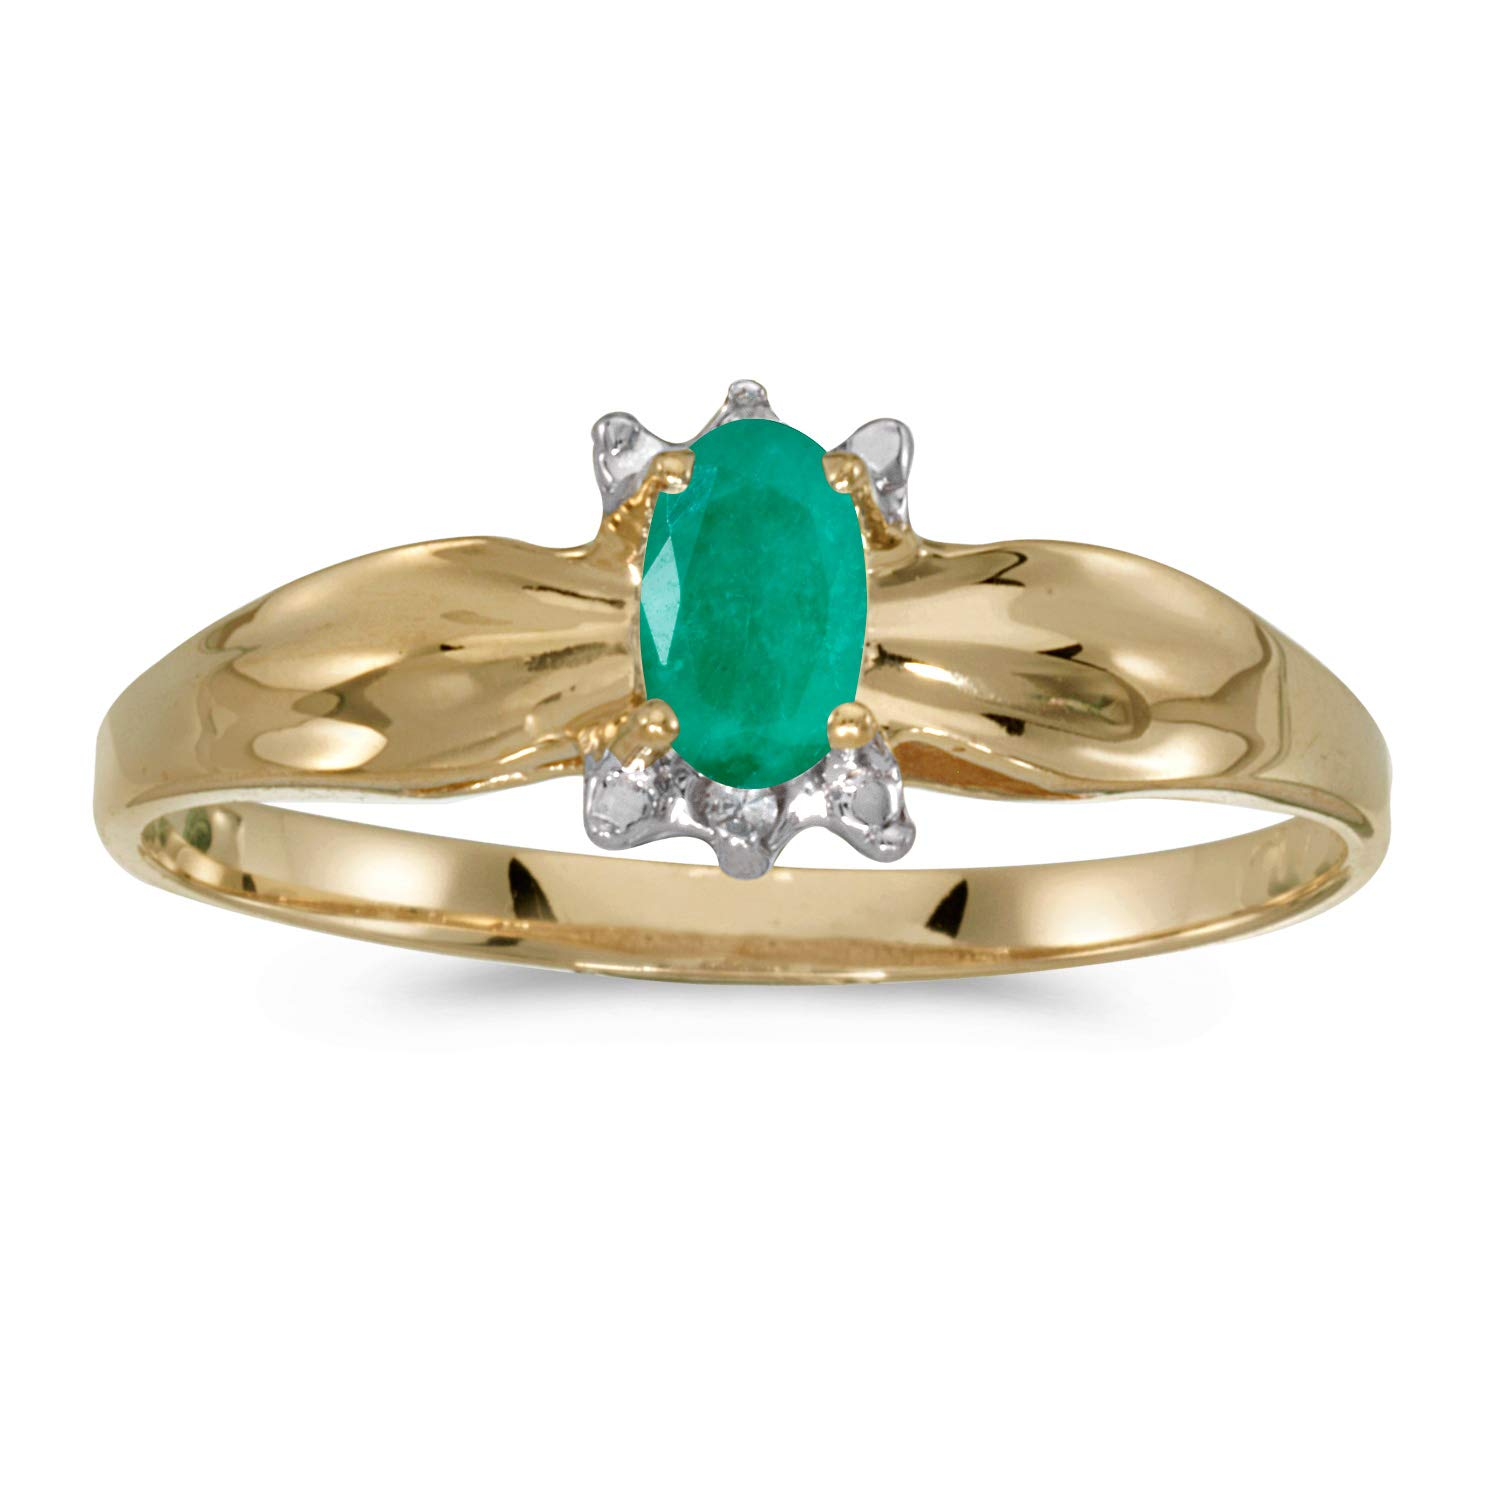 FB Jewels 10k Yellow Gold Genuine Birthstone Solitaire Oval Gemstone And Diamond Wedding Engagement Statement Ring